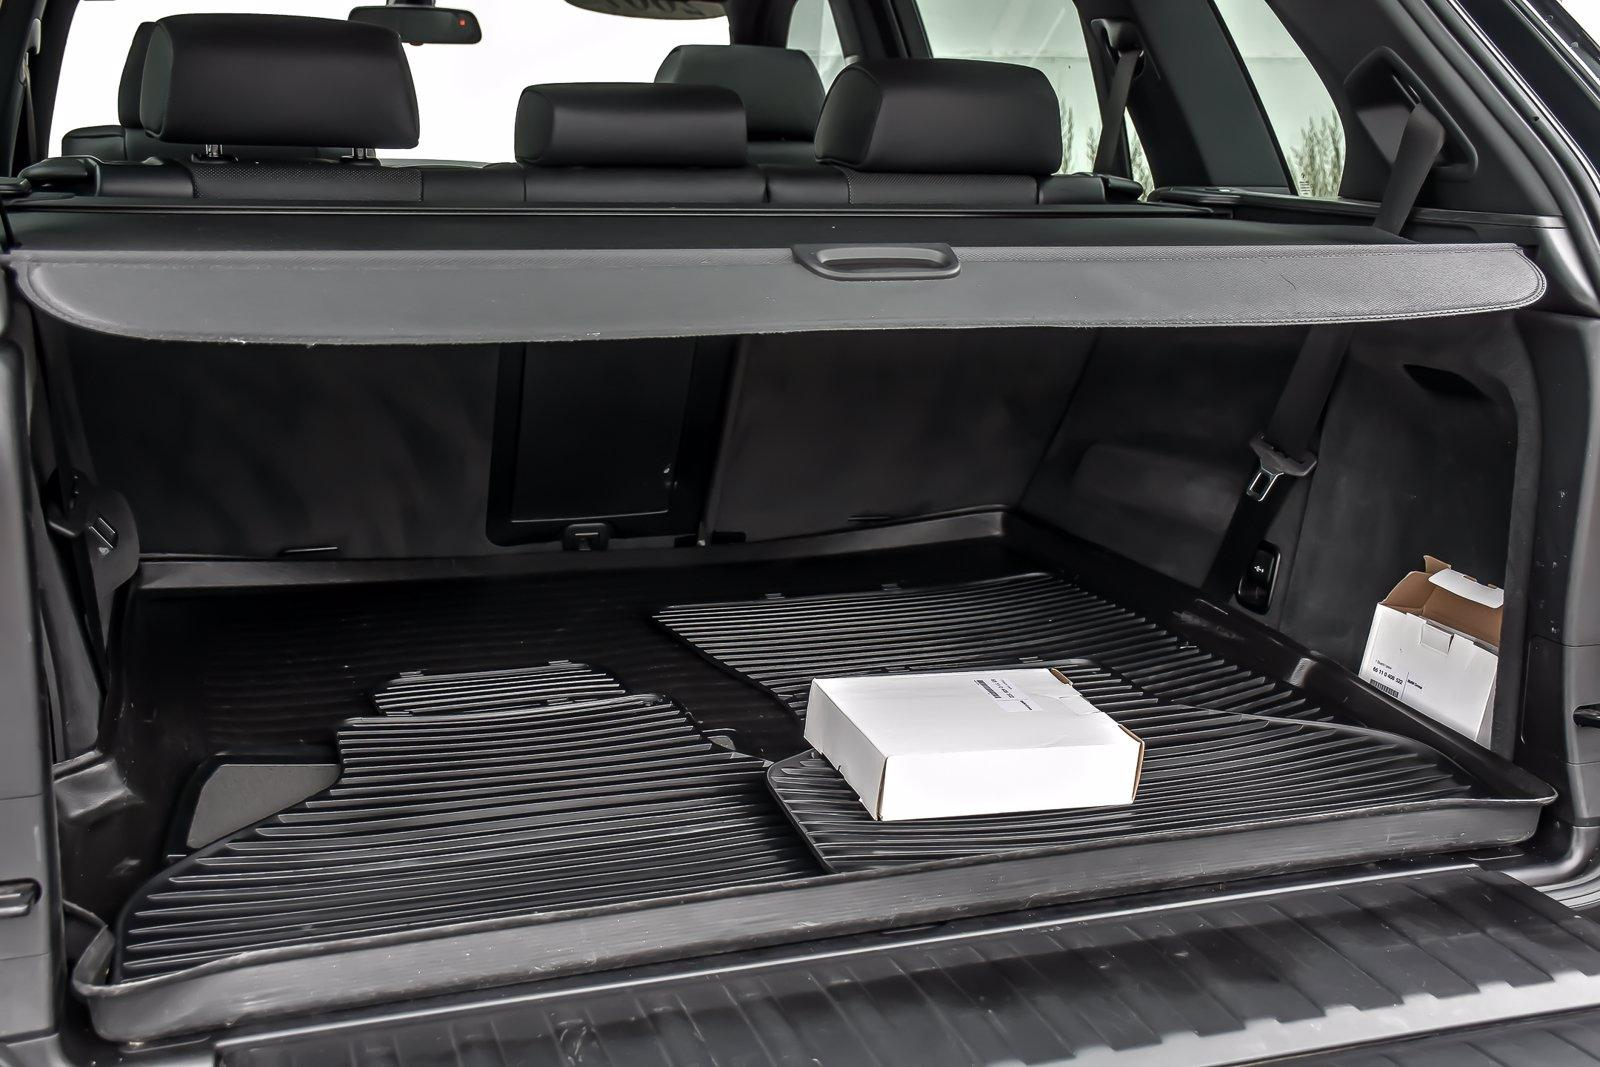 Used 2007 BMW X5 4.8i Prem/Tech/Sport/3rd Row With Rear Ent   Downers Grove, IL